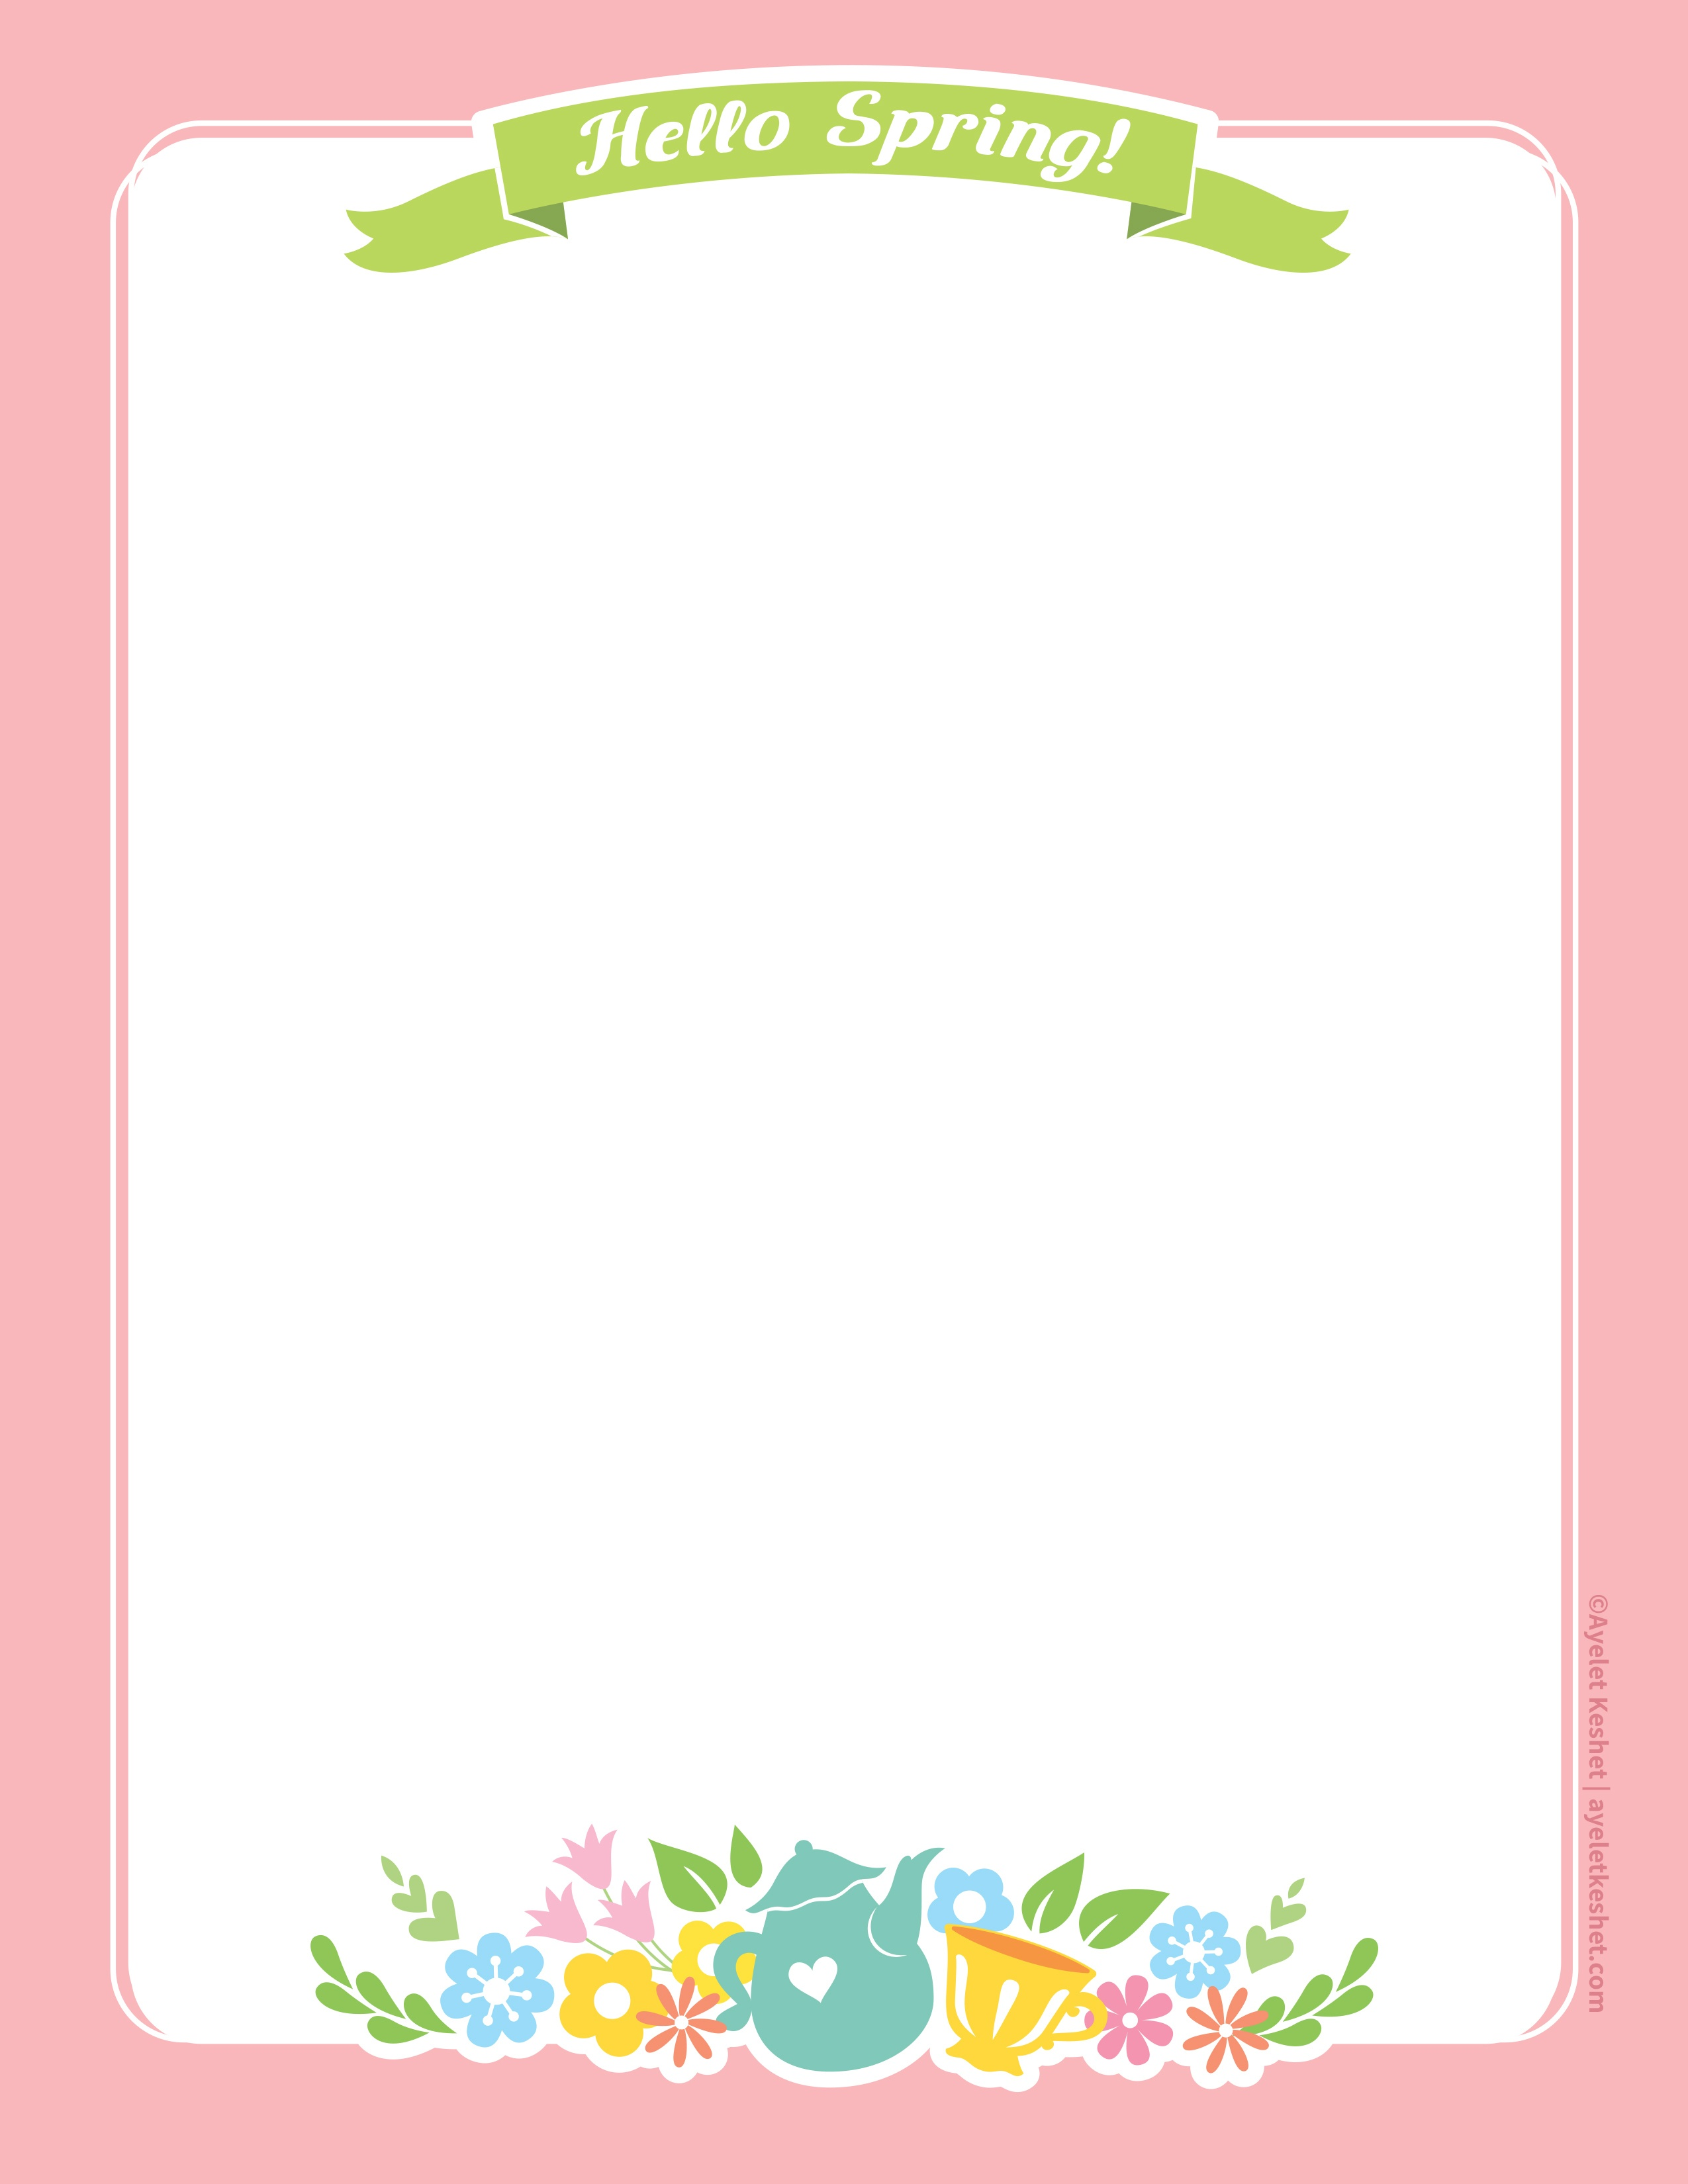 Lovely Free Printable Stationery Paper For Spring - Ayelet Keshet - Free Printable Stationery Pdf